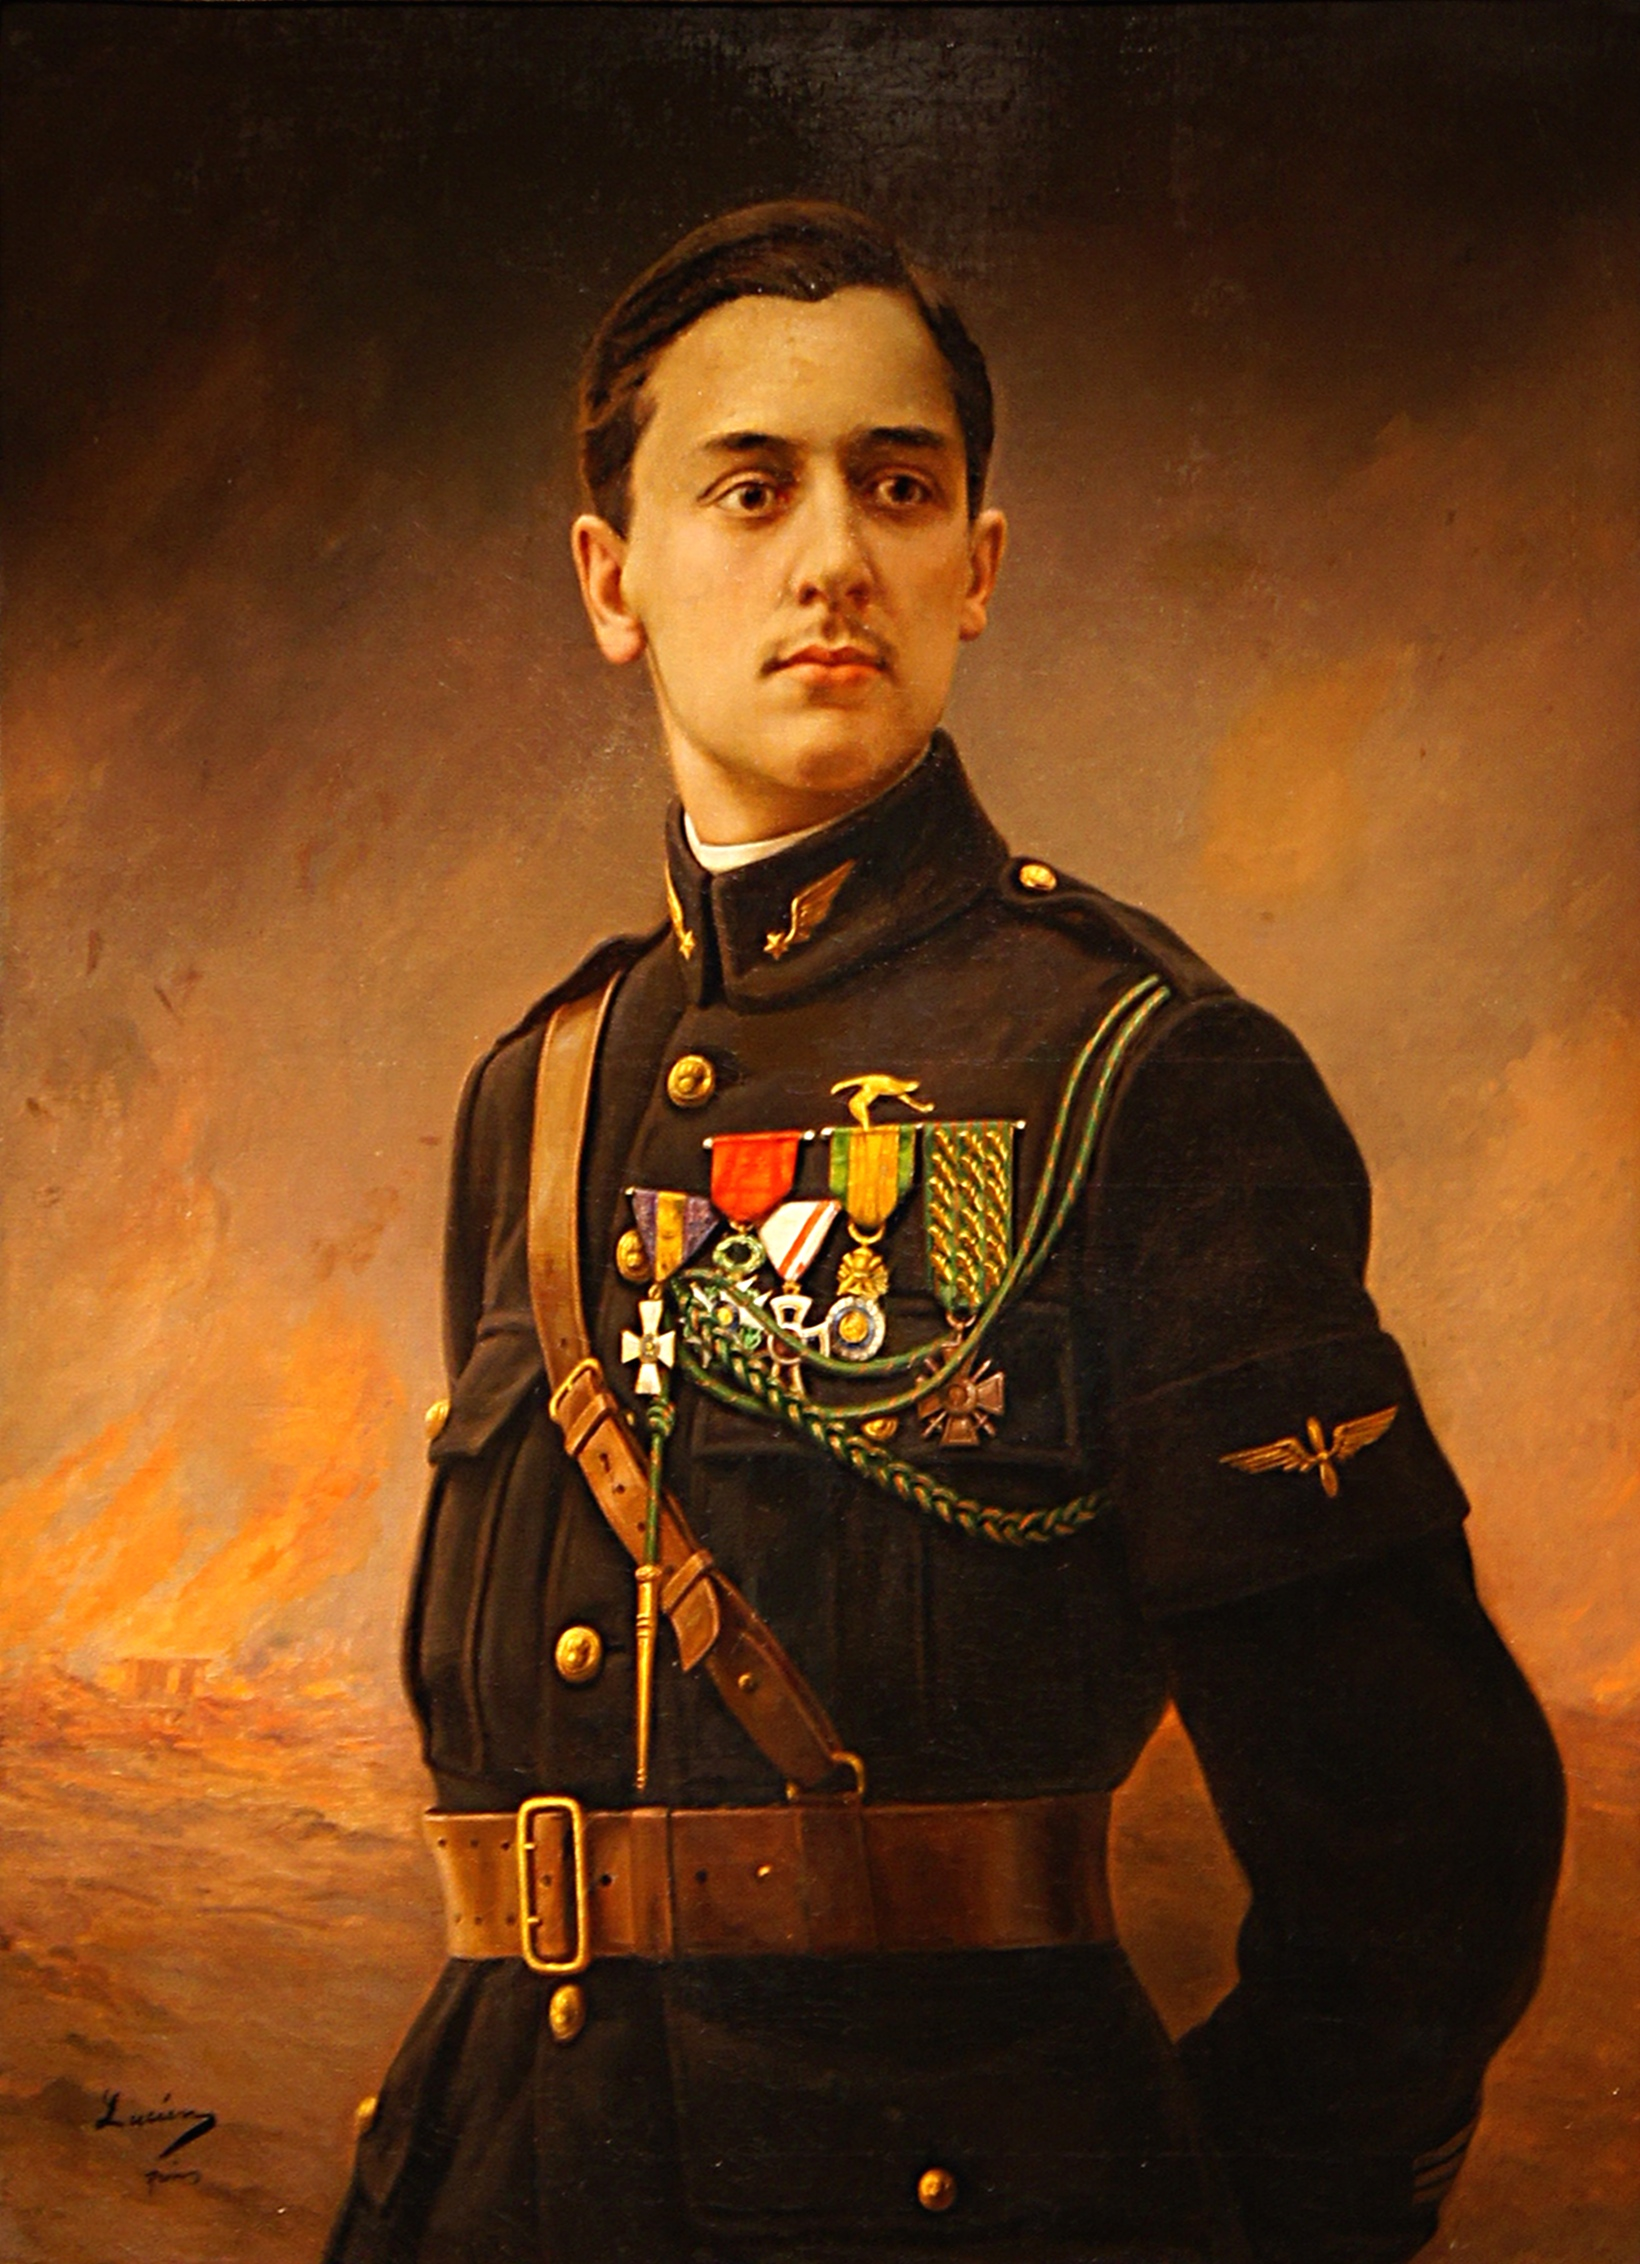 Georges Guynemer, French Air Force pilot and WWI ace